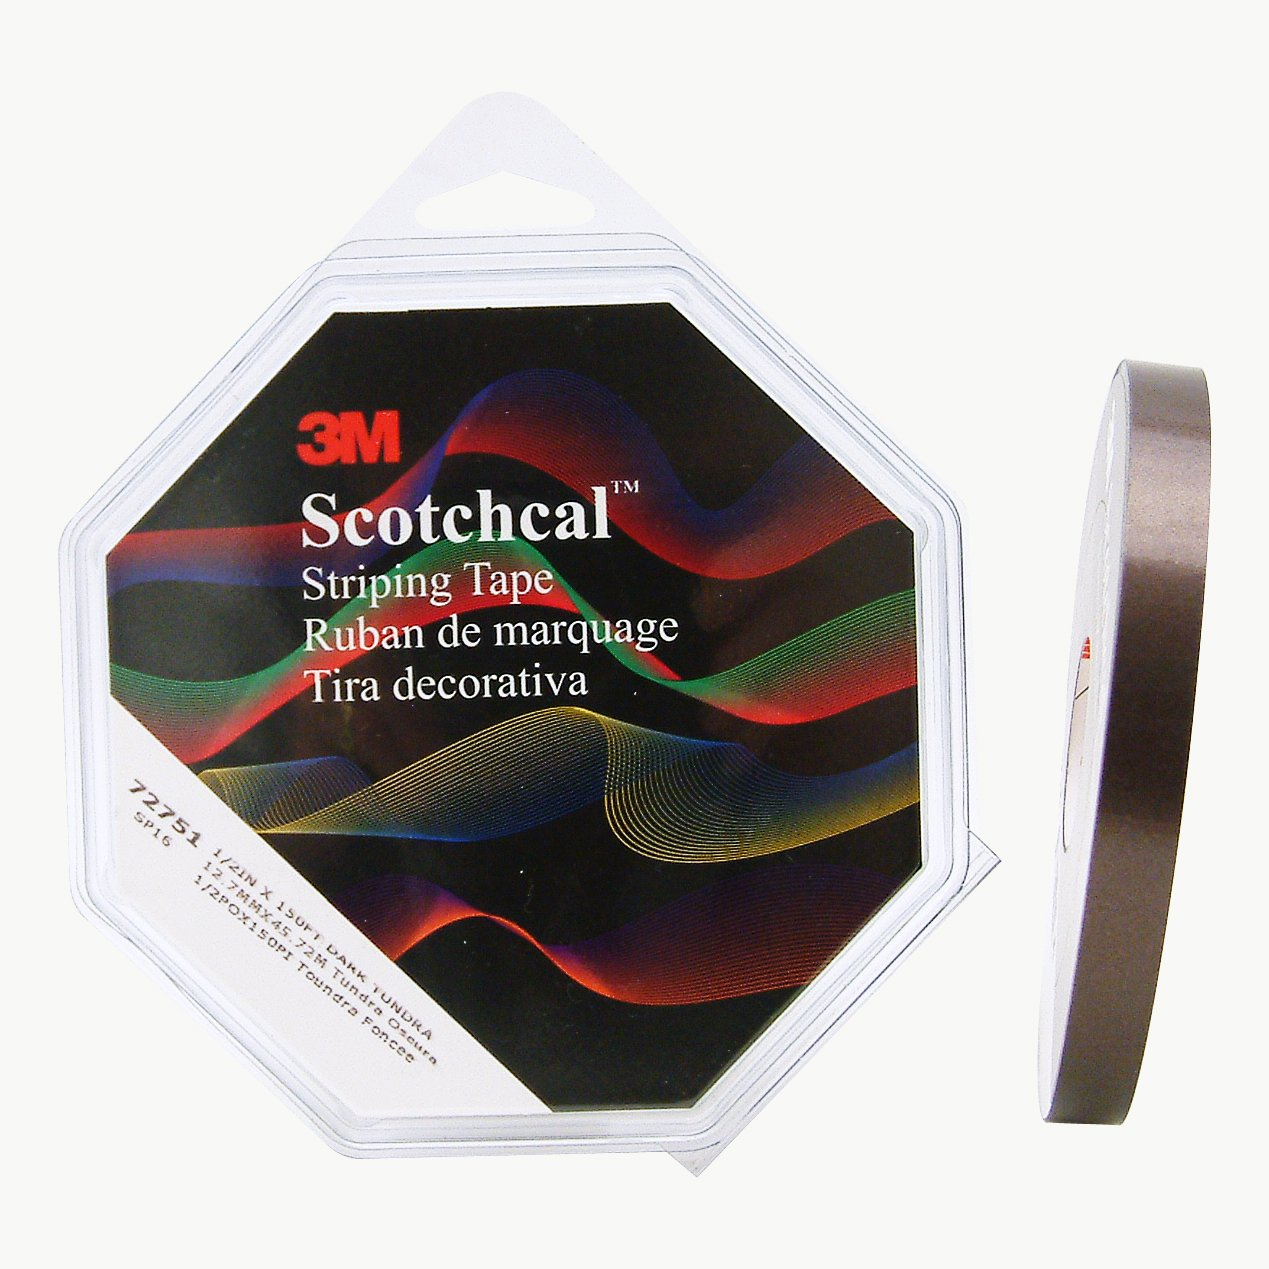 3M(TM) Scotchcal(TM) Striping Tape 70304, Red, 1/4 in x 40 ft [PRICE is per R... 75345495396